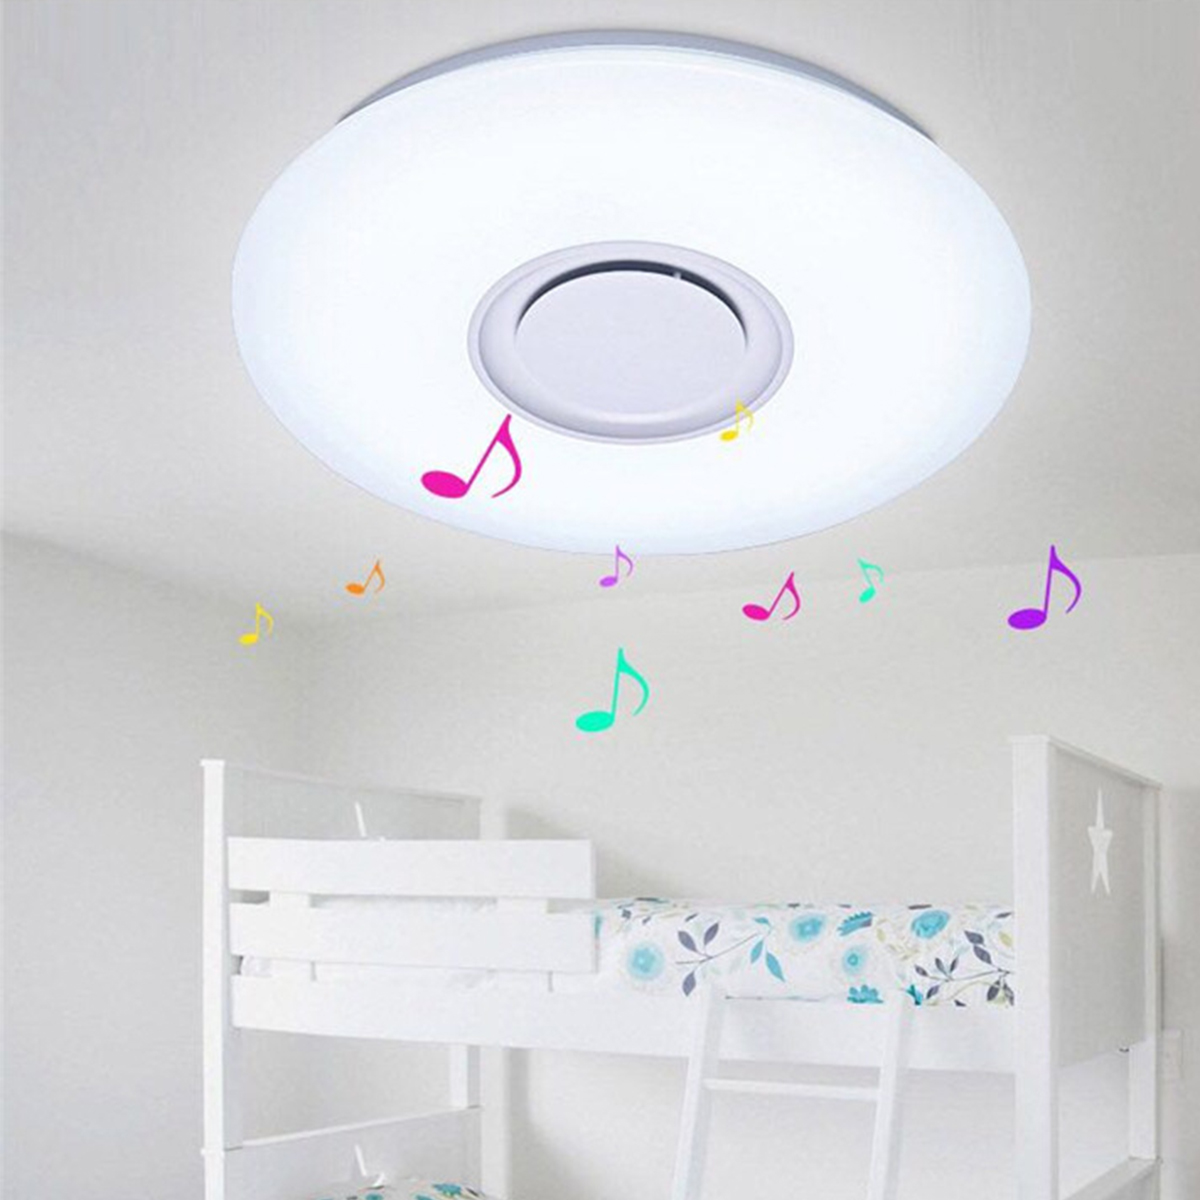 Bluetooth Ceiling Speaker Smart APP Control Loundspeaker Player With RGB Dimmable LED Ceiling Lights Panel Lamp For Kids Bedroom